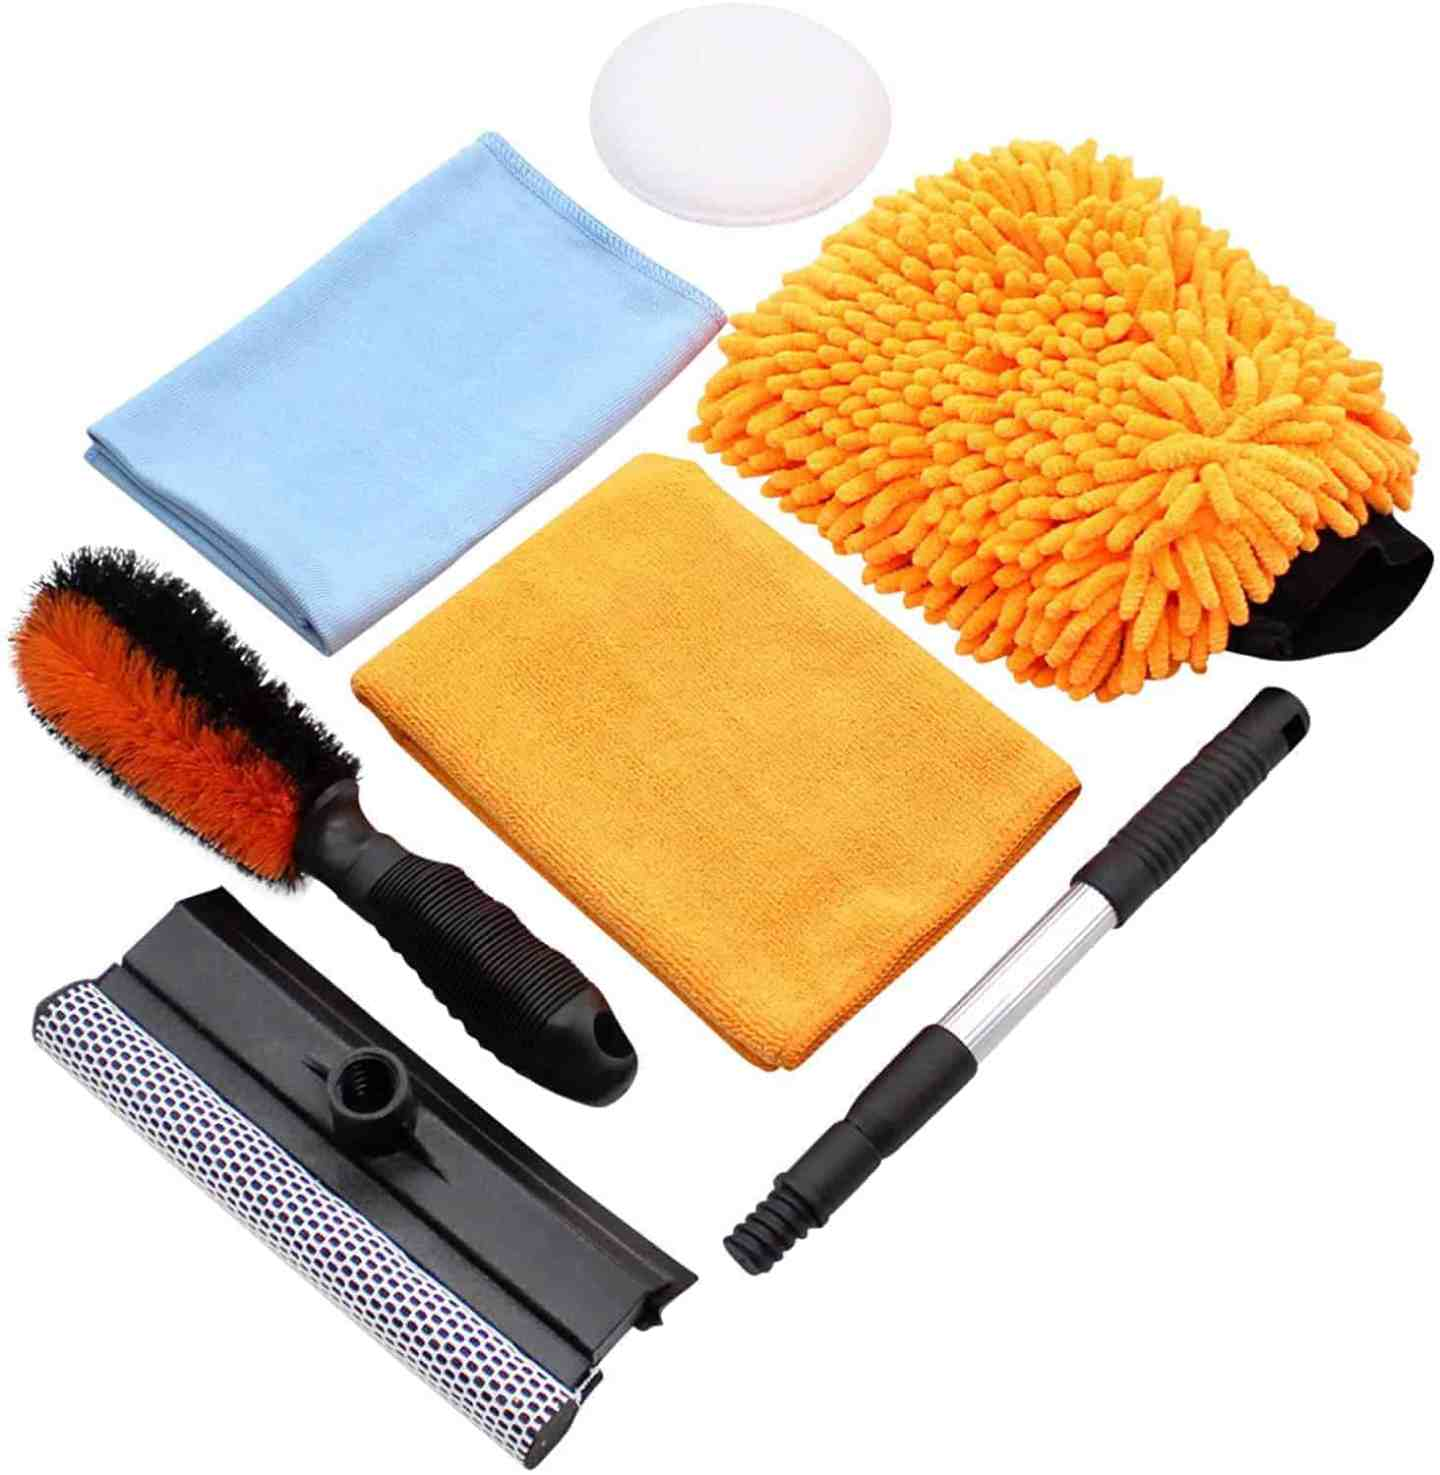 Car-Wash-Kit-Fathers-Day-Gift-Ideas